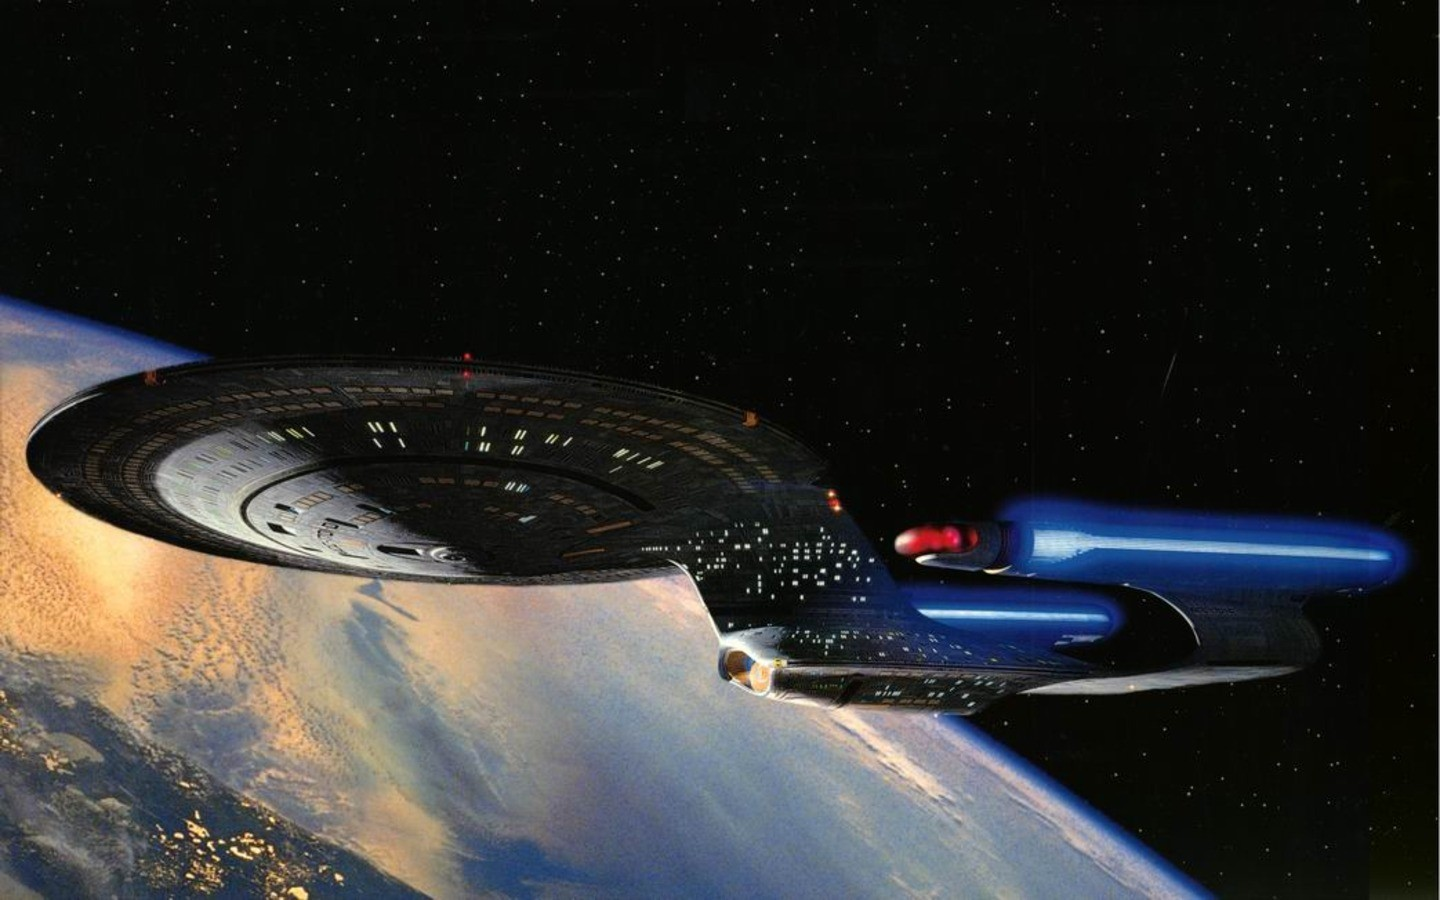 star Trek uss Enterprise HD Wallpaper